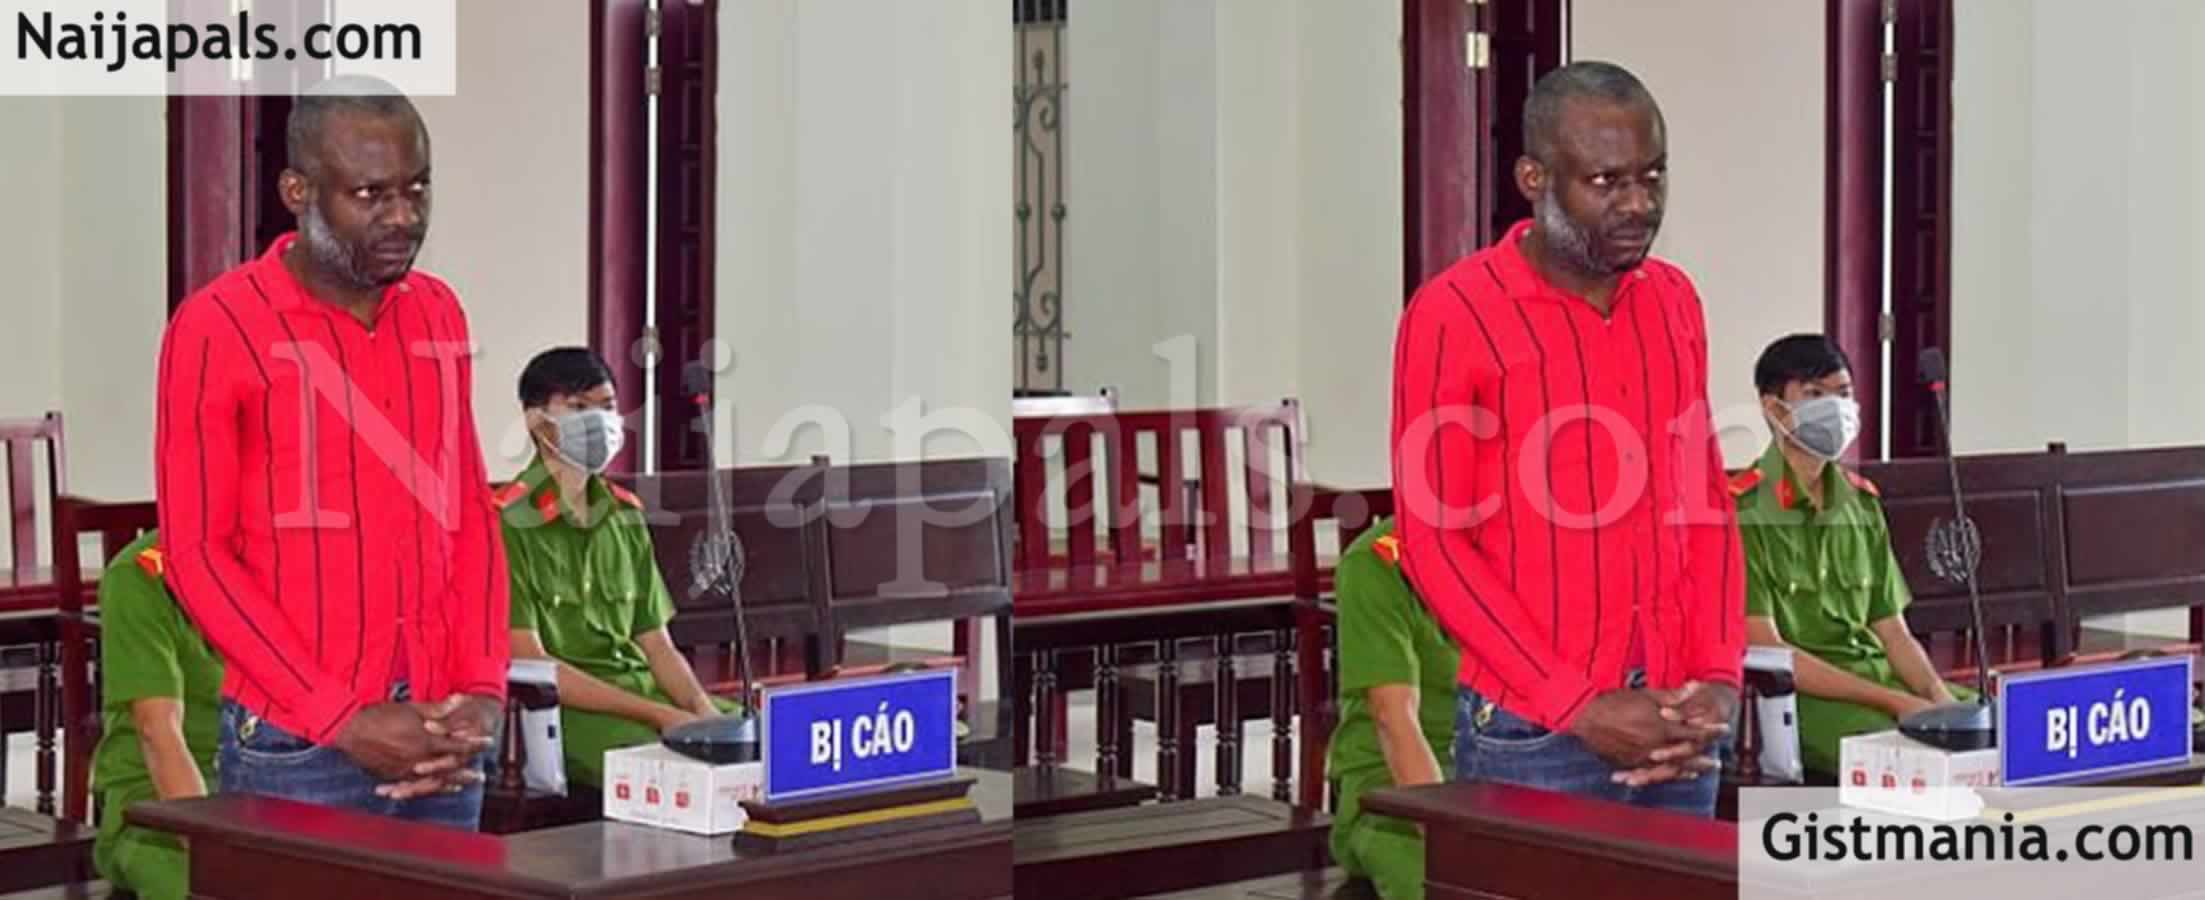 <img alt='.' class='lazyload' data-src='https://img.gistmania.com/emot/news.gif' /> <b>Nigerian Drug Baron, Ekwegbalu James Nzube Sentenced To Death In Vietnam For Smuggling Drugs</b>